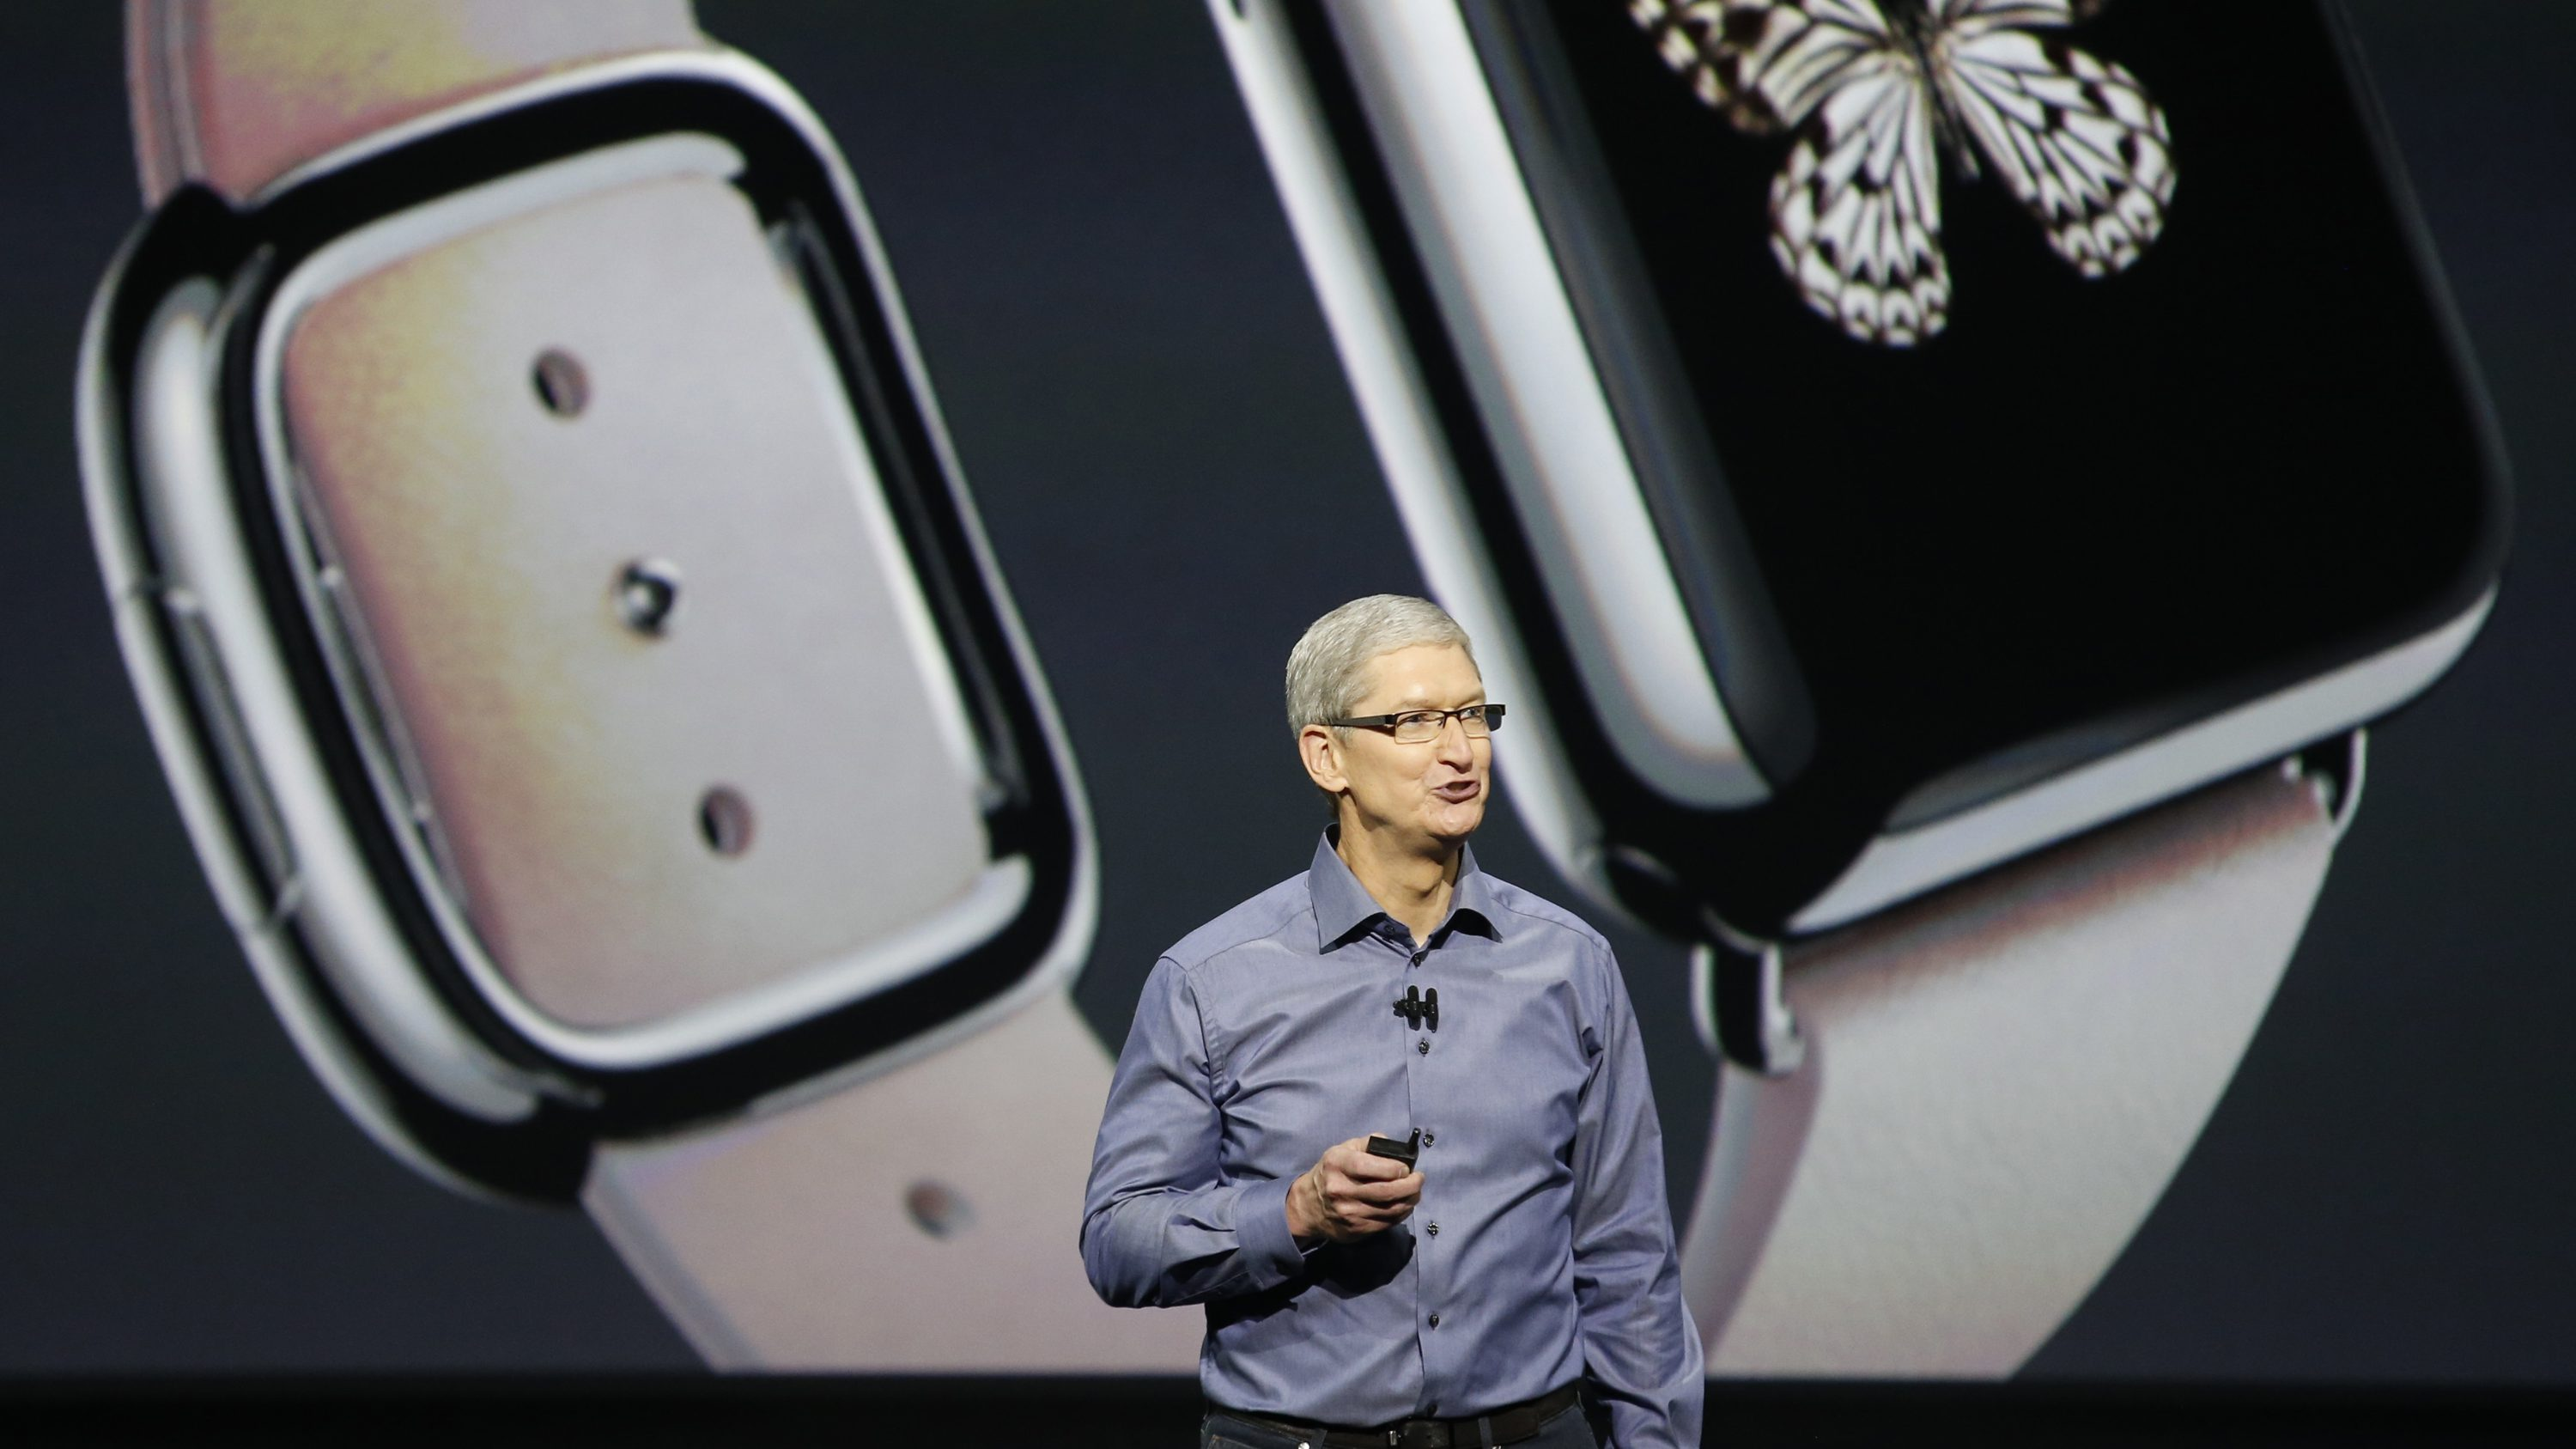 Apple CEO Tim Cook discusses the Apple Watch during an Apple media event in San Francisco, California, September 9, 2015.